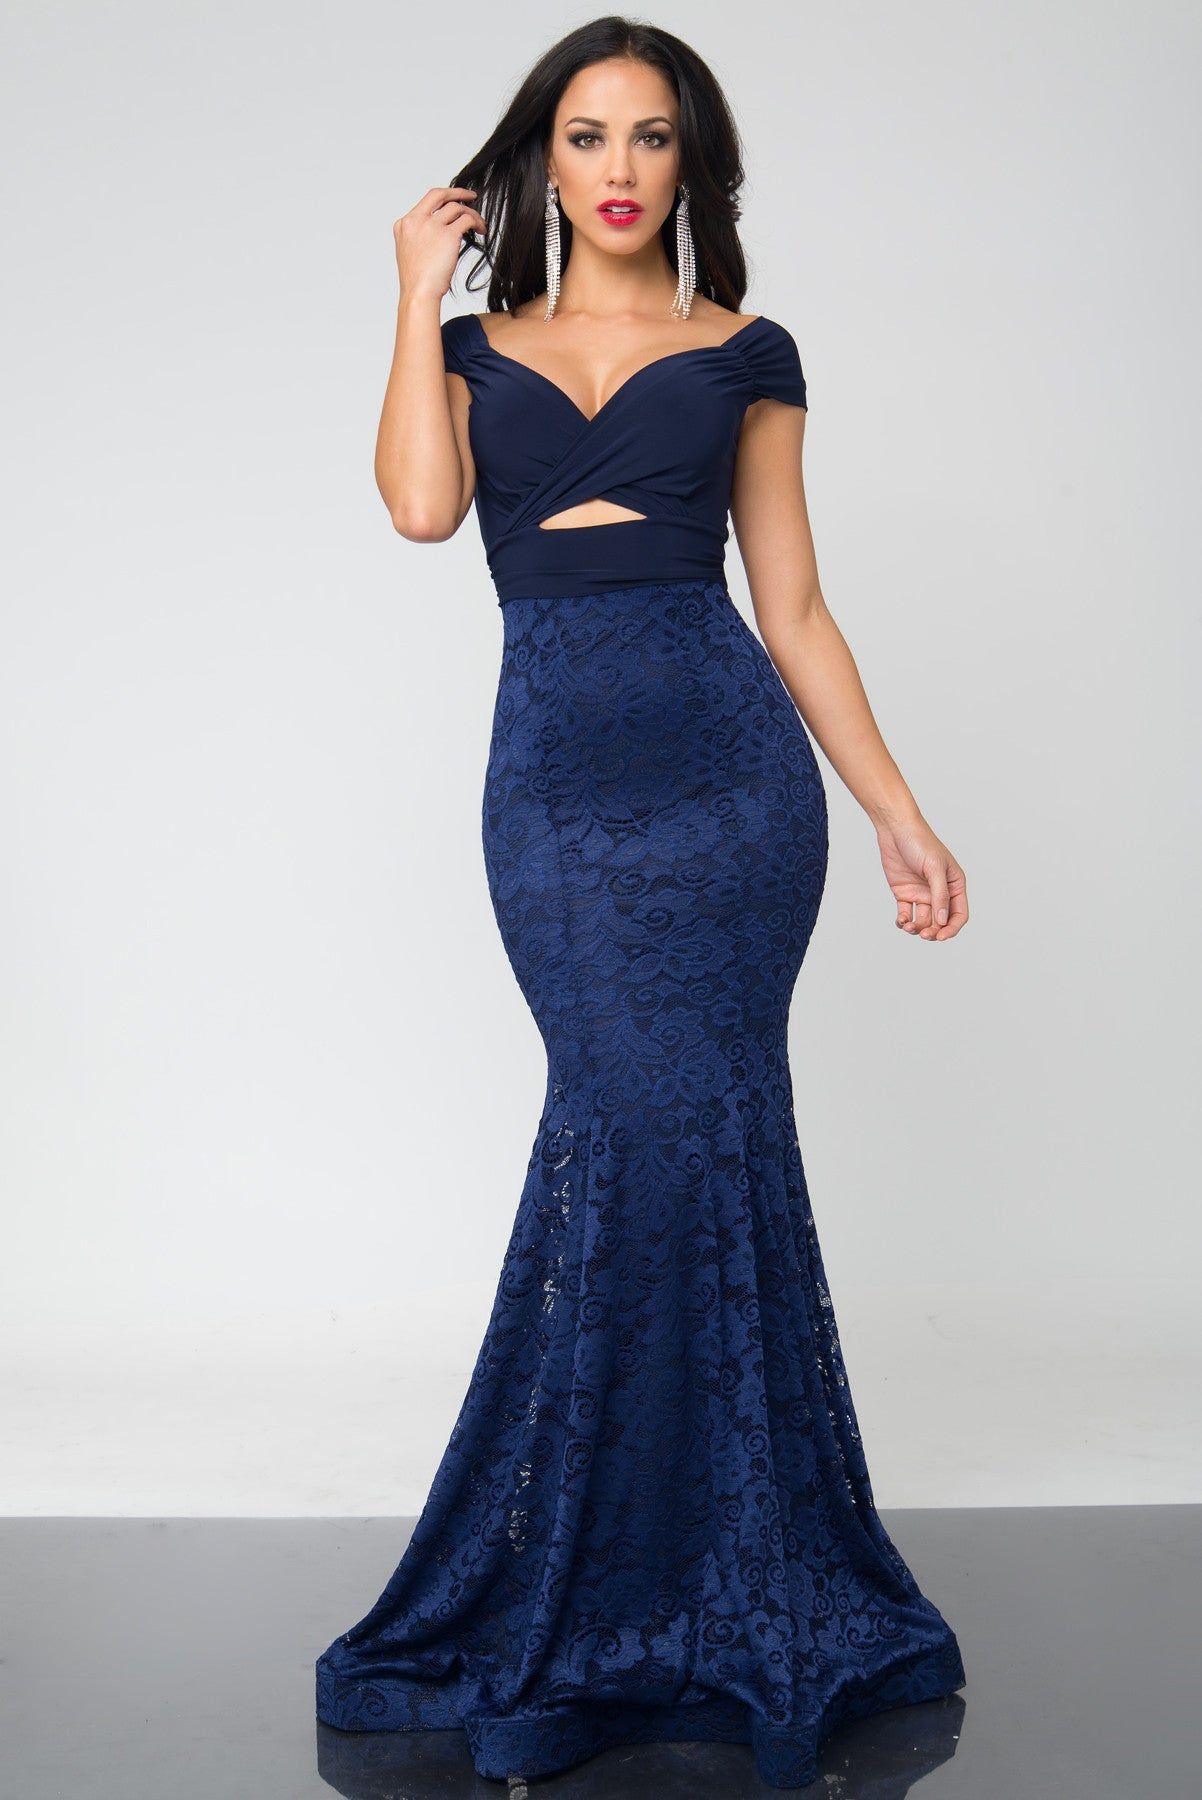 Valentina Navy Blue Dress - Fashion Effect Store  - 1